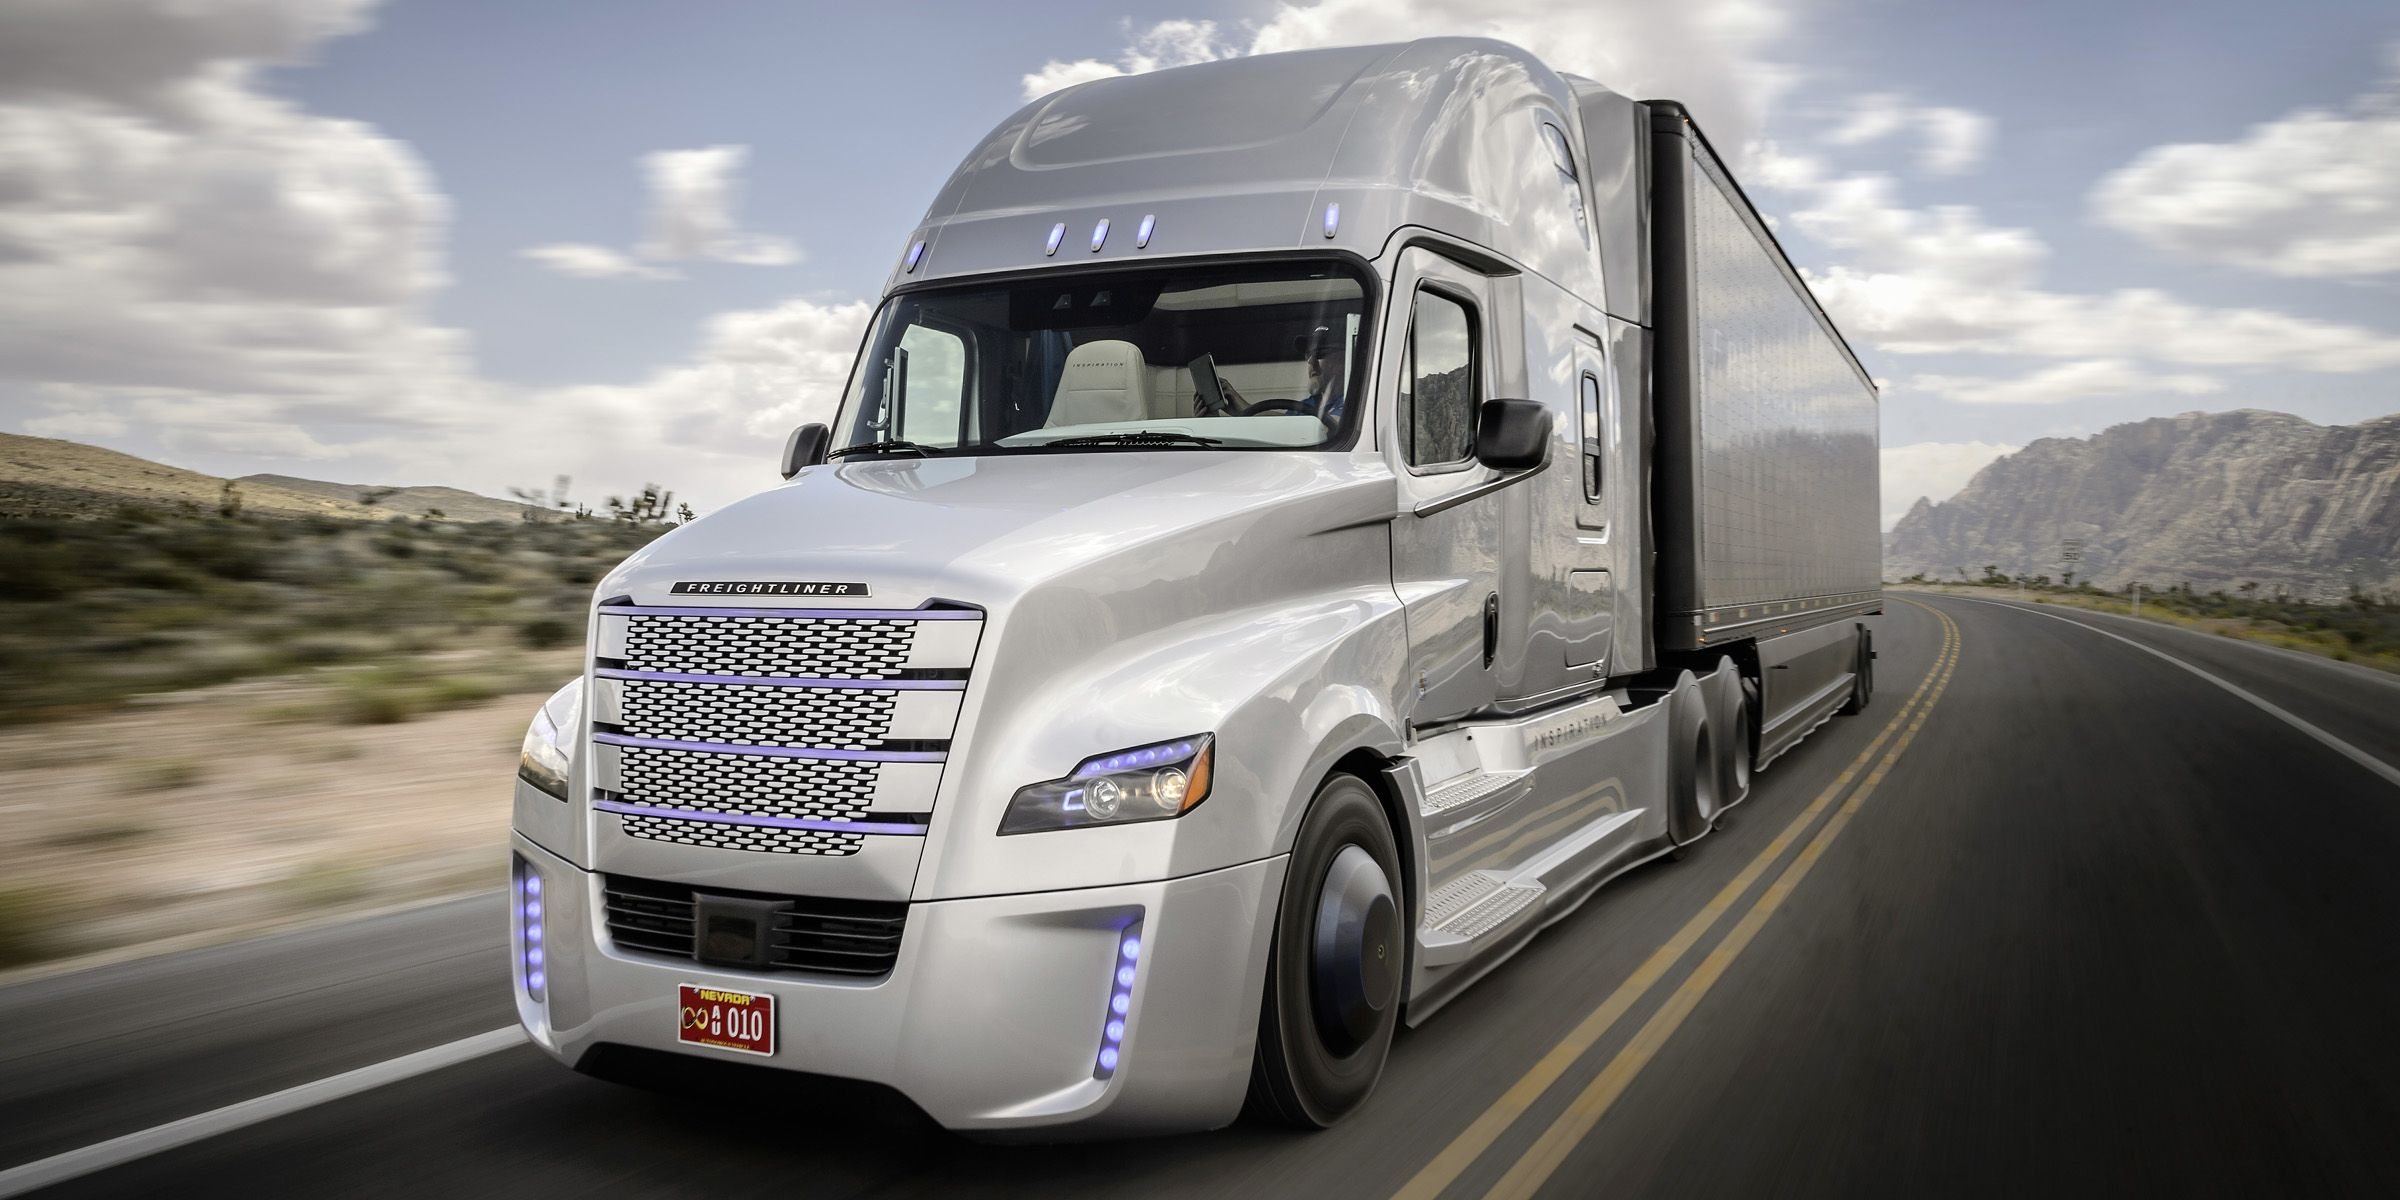 Freightliner Inspiration The self driving big rig in photos